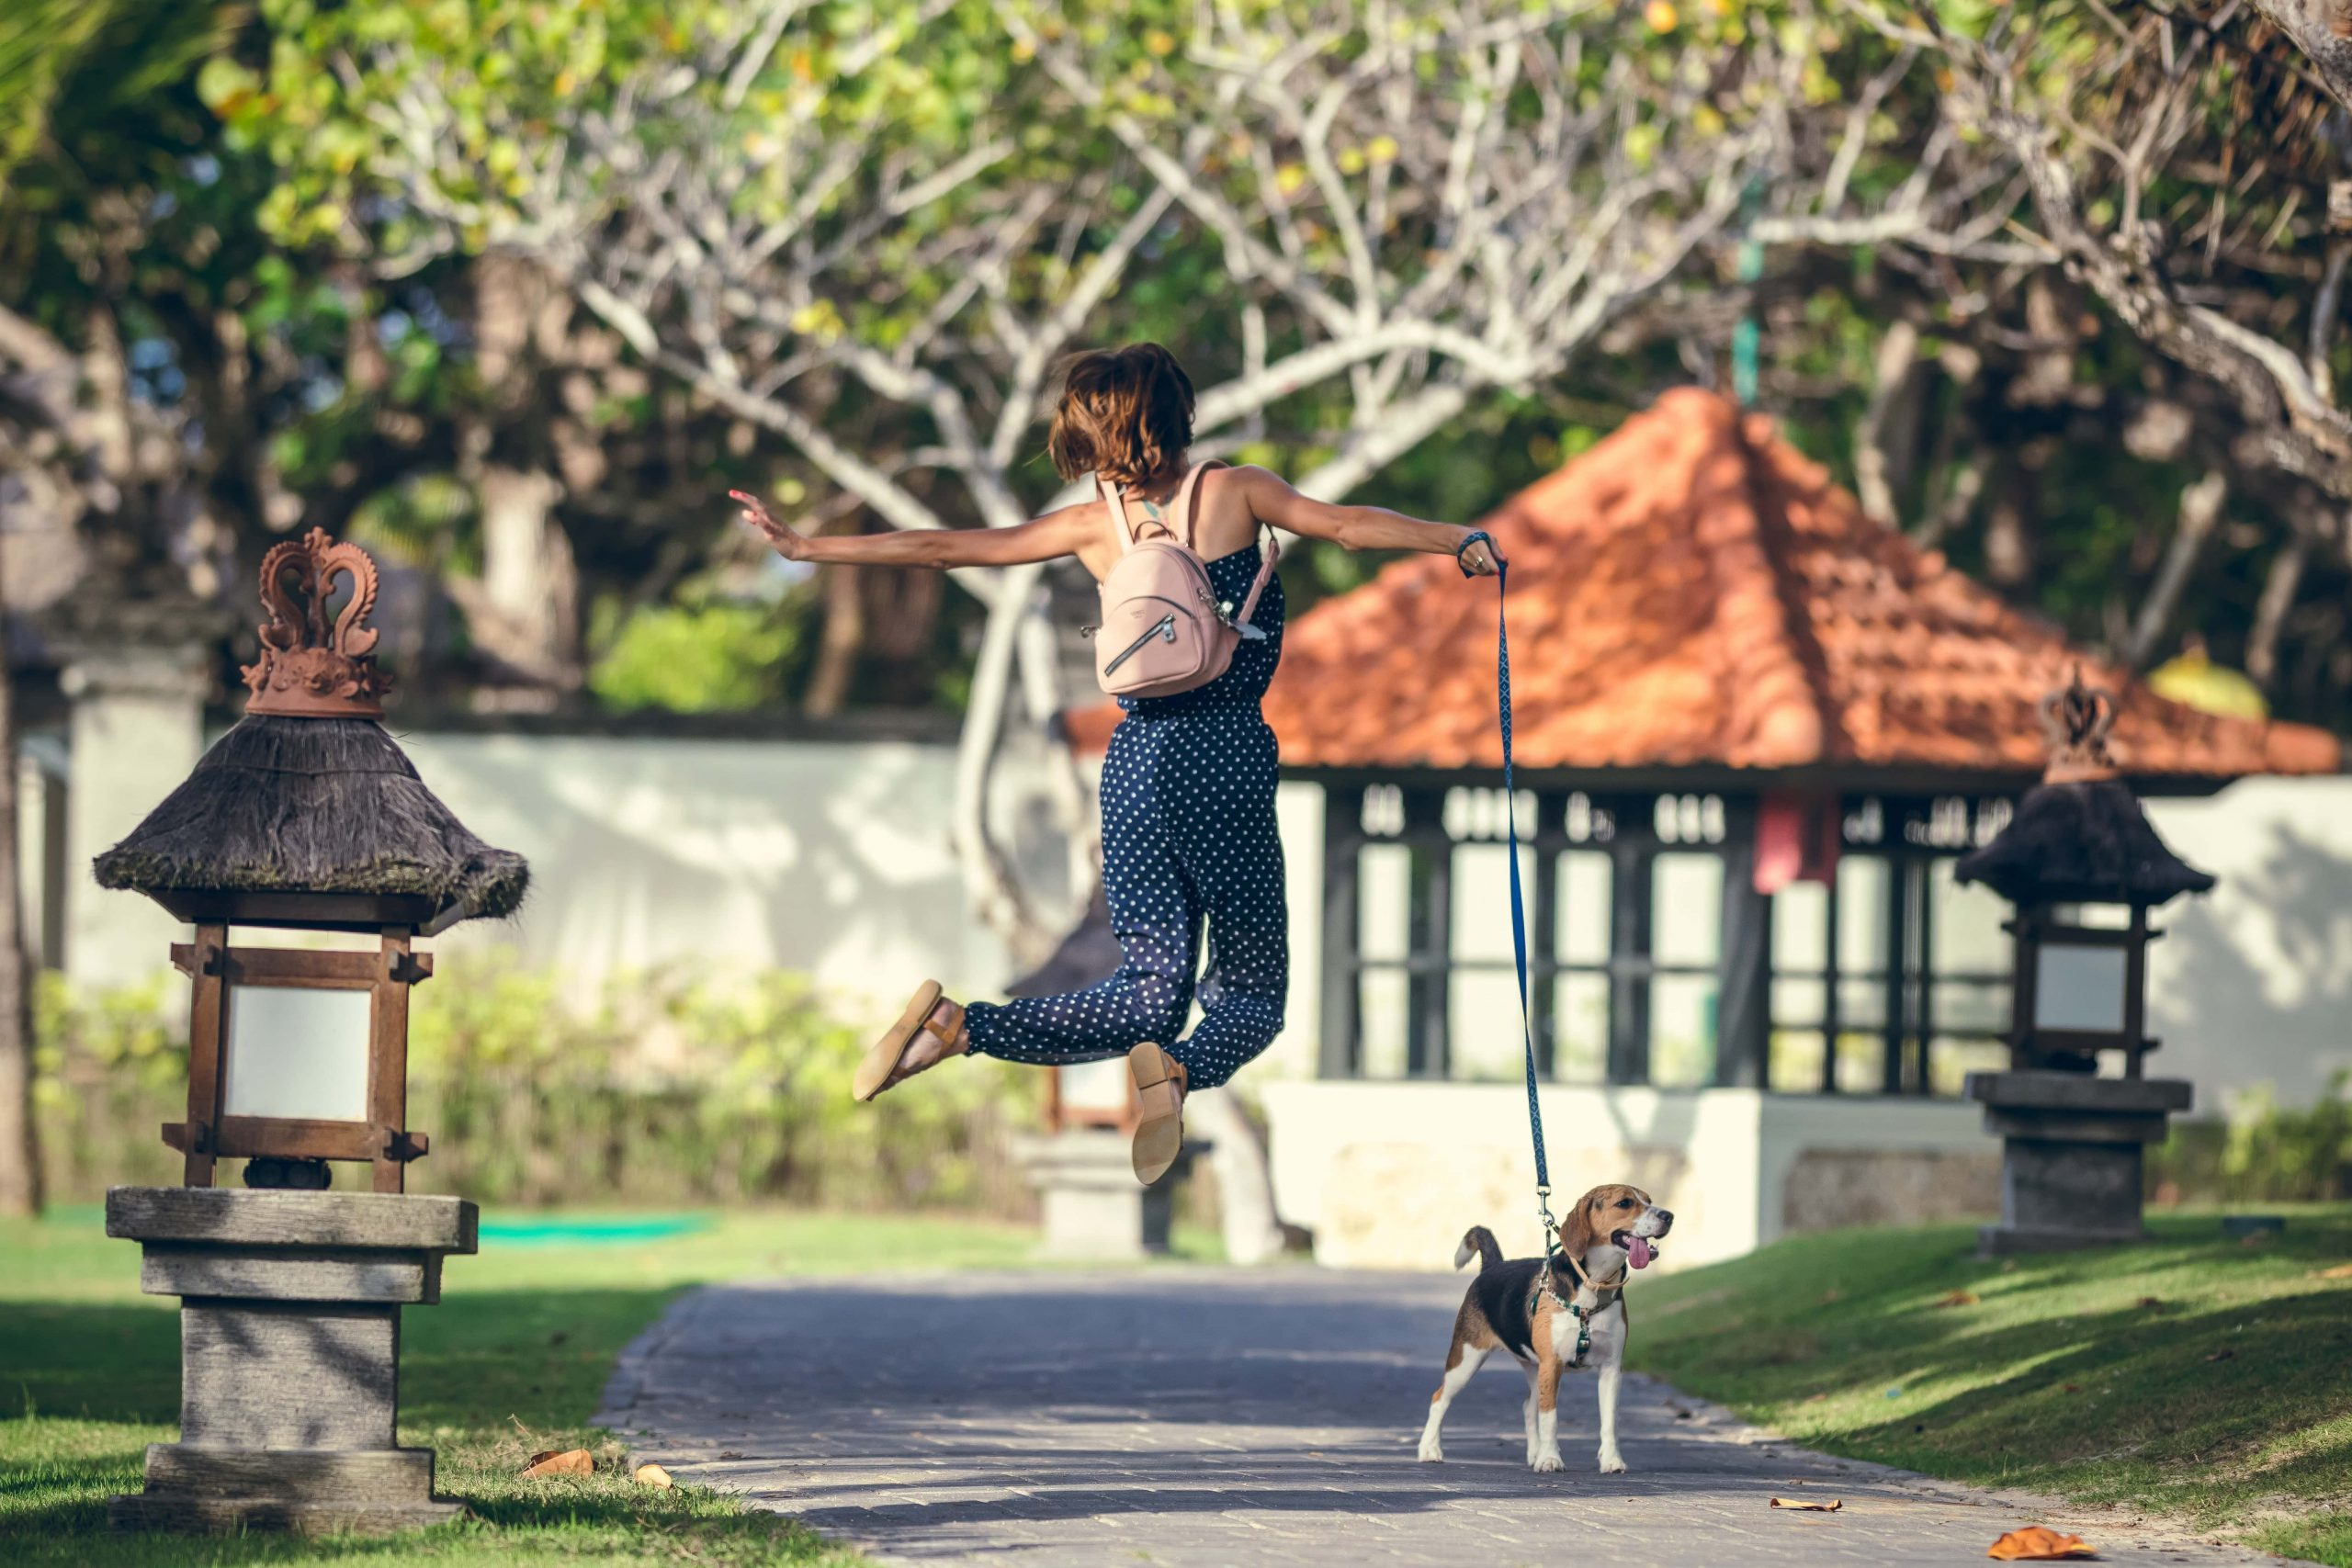 woman jumping in the air in the park, facing away from the camera. Whilst holding a beagle puppy by the lead.